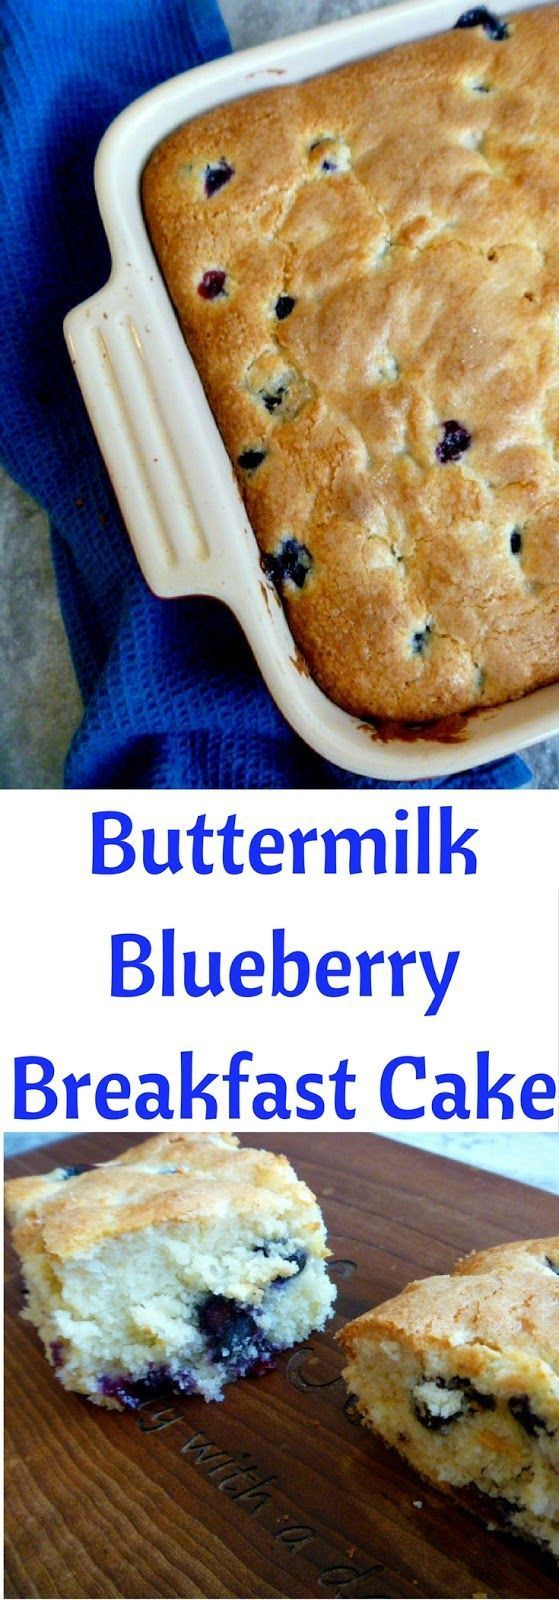 Buttermilk Blueberry Breakfast Cake #buttermilkblueberrybreakfastcake Buttermilk Blueberry Breakfast Cake - Perfect for Easter Brunch or a weekend breakfast - Slice of Southern #buttermilkblueberrybreakfastcake Buttermilk Blueberry Breakfast Cake #buttermilkblueberrybreakfastcake Buttermilk Blueberry Breakfast Cake - Perfect for Easter Brunch or a weekend breakfast - Slice of Southern #buttermilkblueberrybreakfastcake